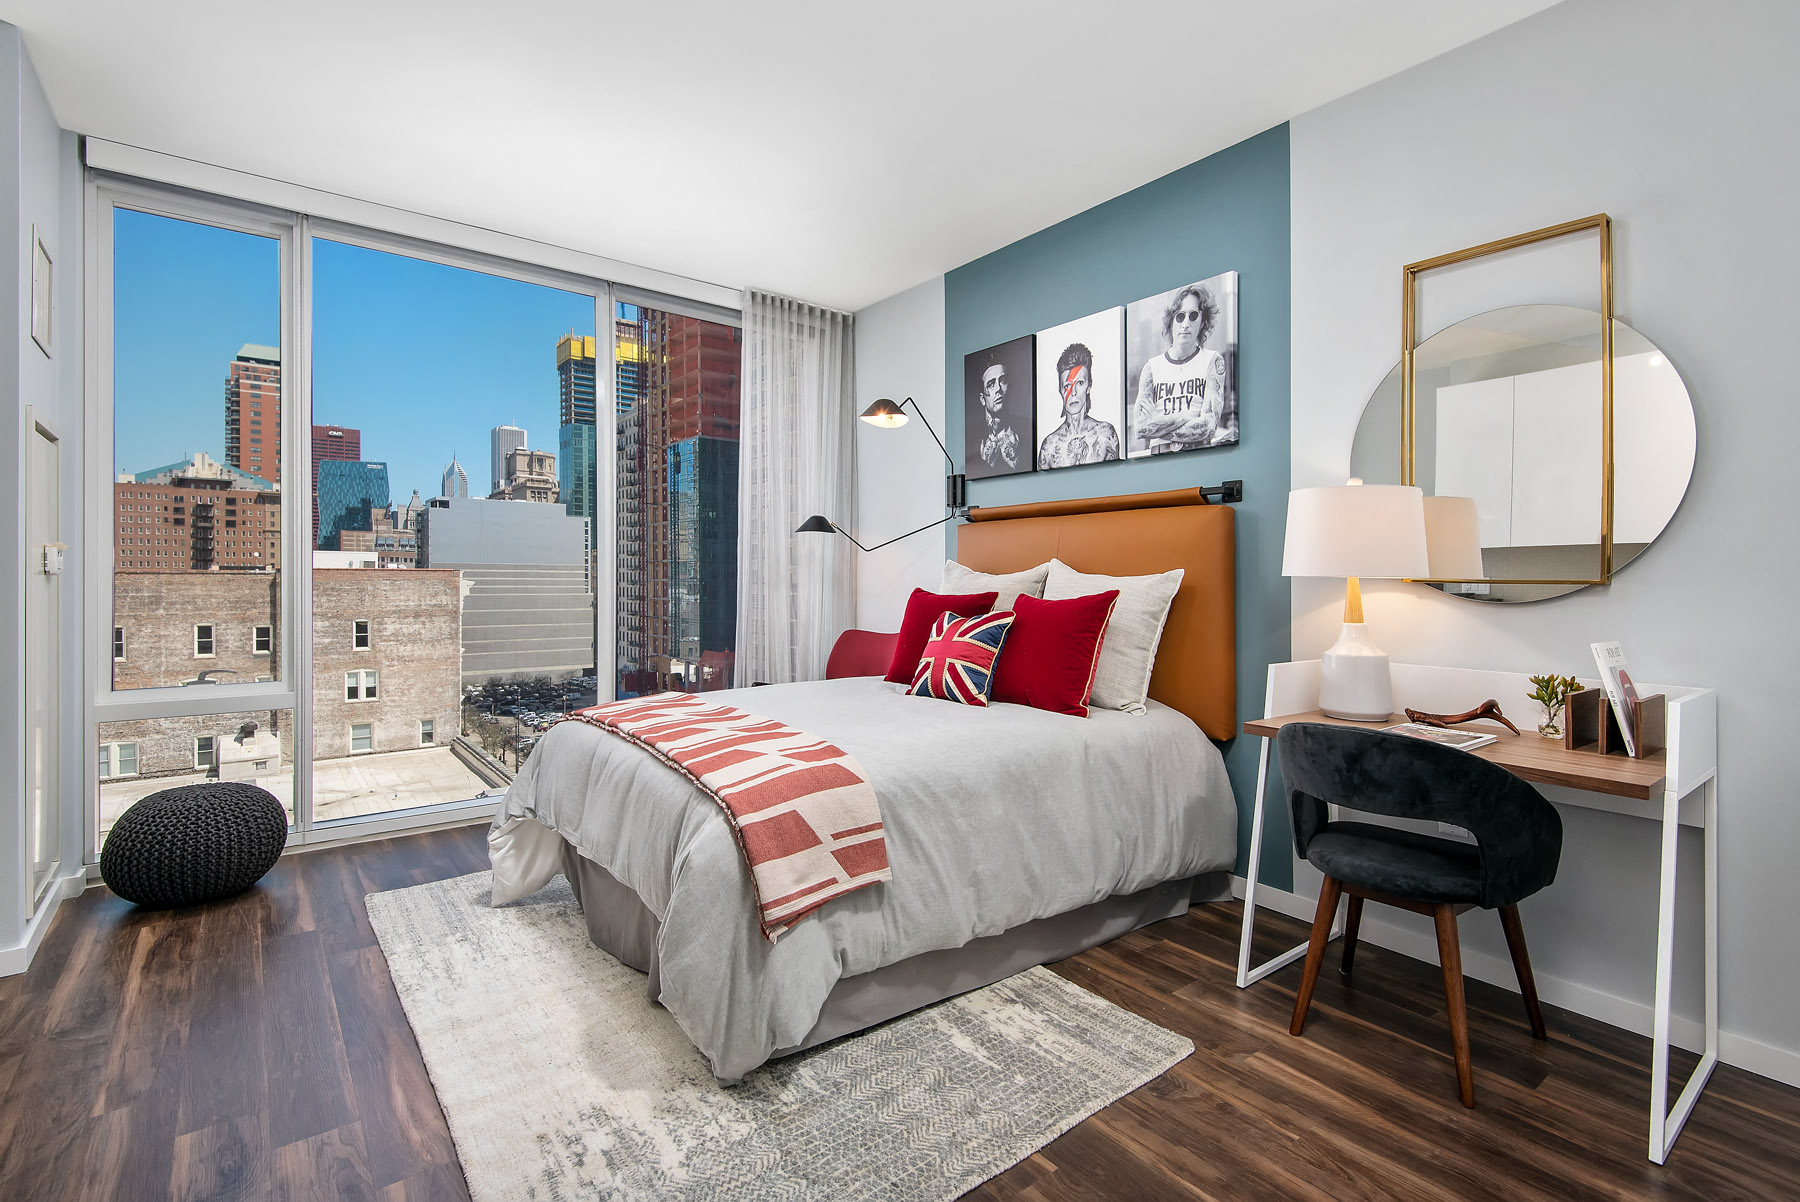 Furnished studio bedroom with floor to ceiling windows at Eleven40, Chicago, IL